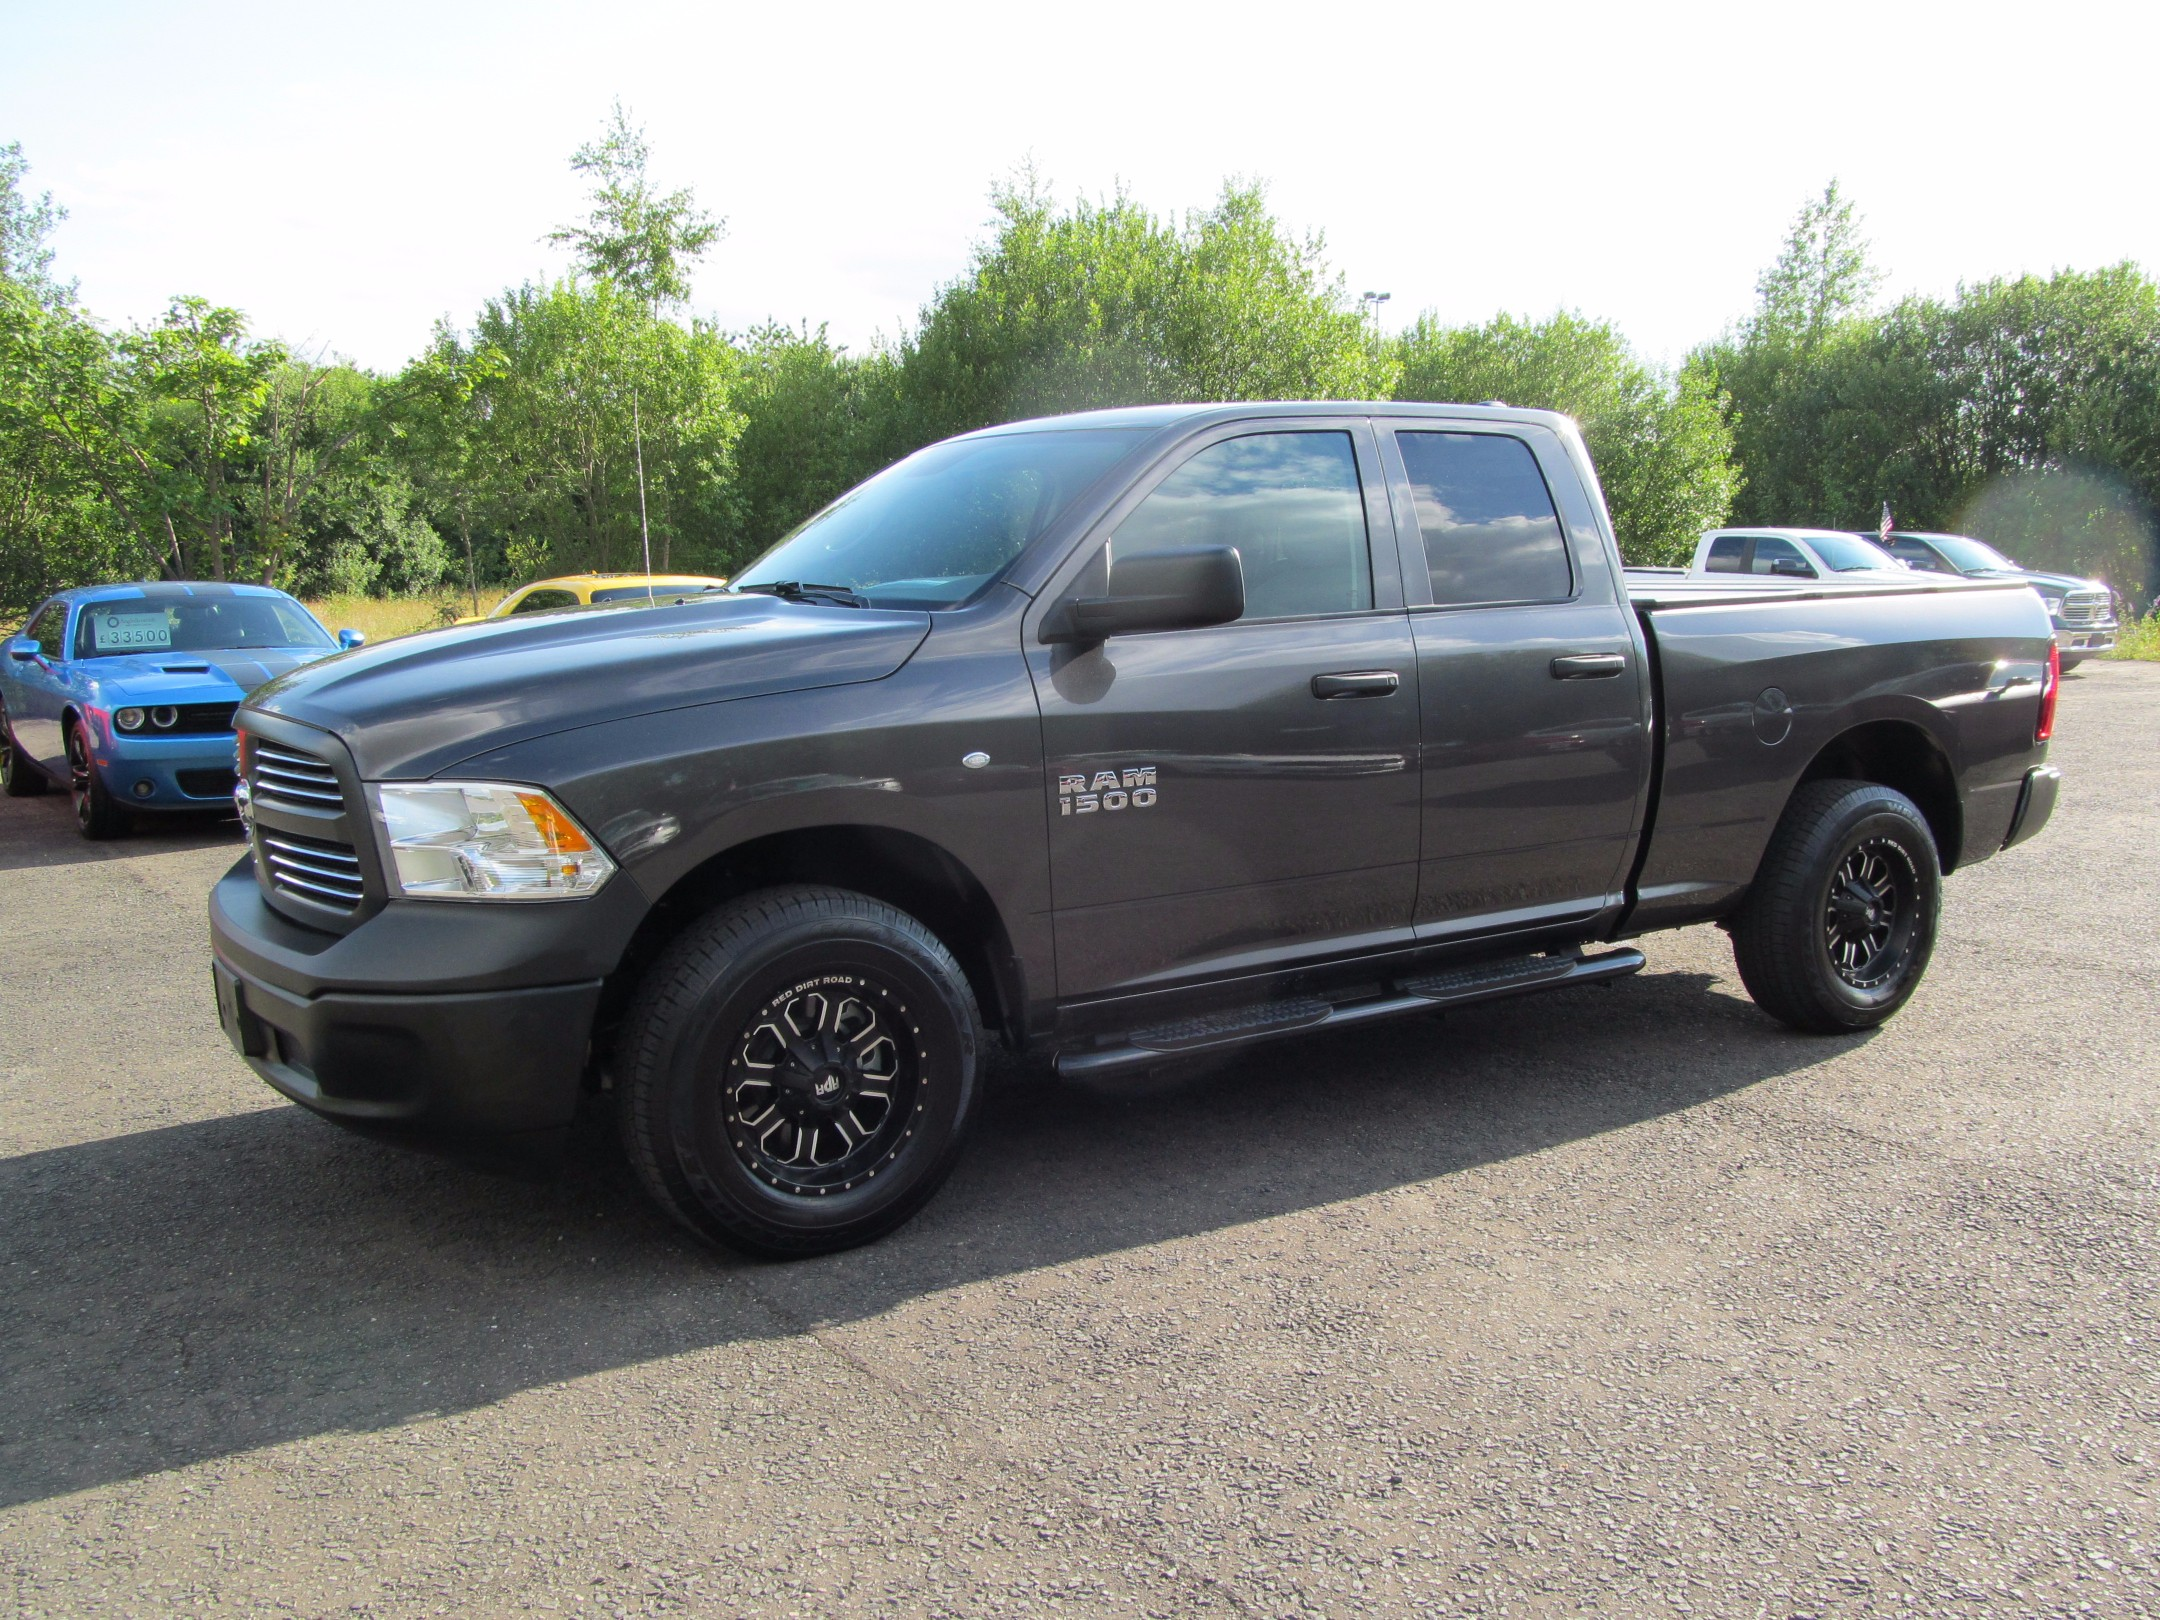 2017 67 reg dodge ram 1500 3 6ltr v6 4 4 auto grey david johnson ford lincoln. Black Bedroom Furniture Sets. Home Design Ideas